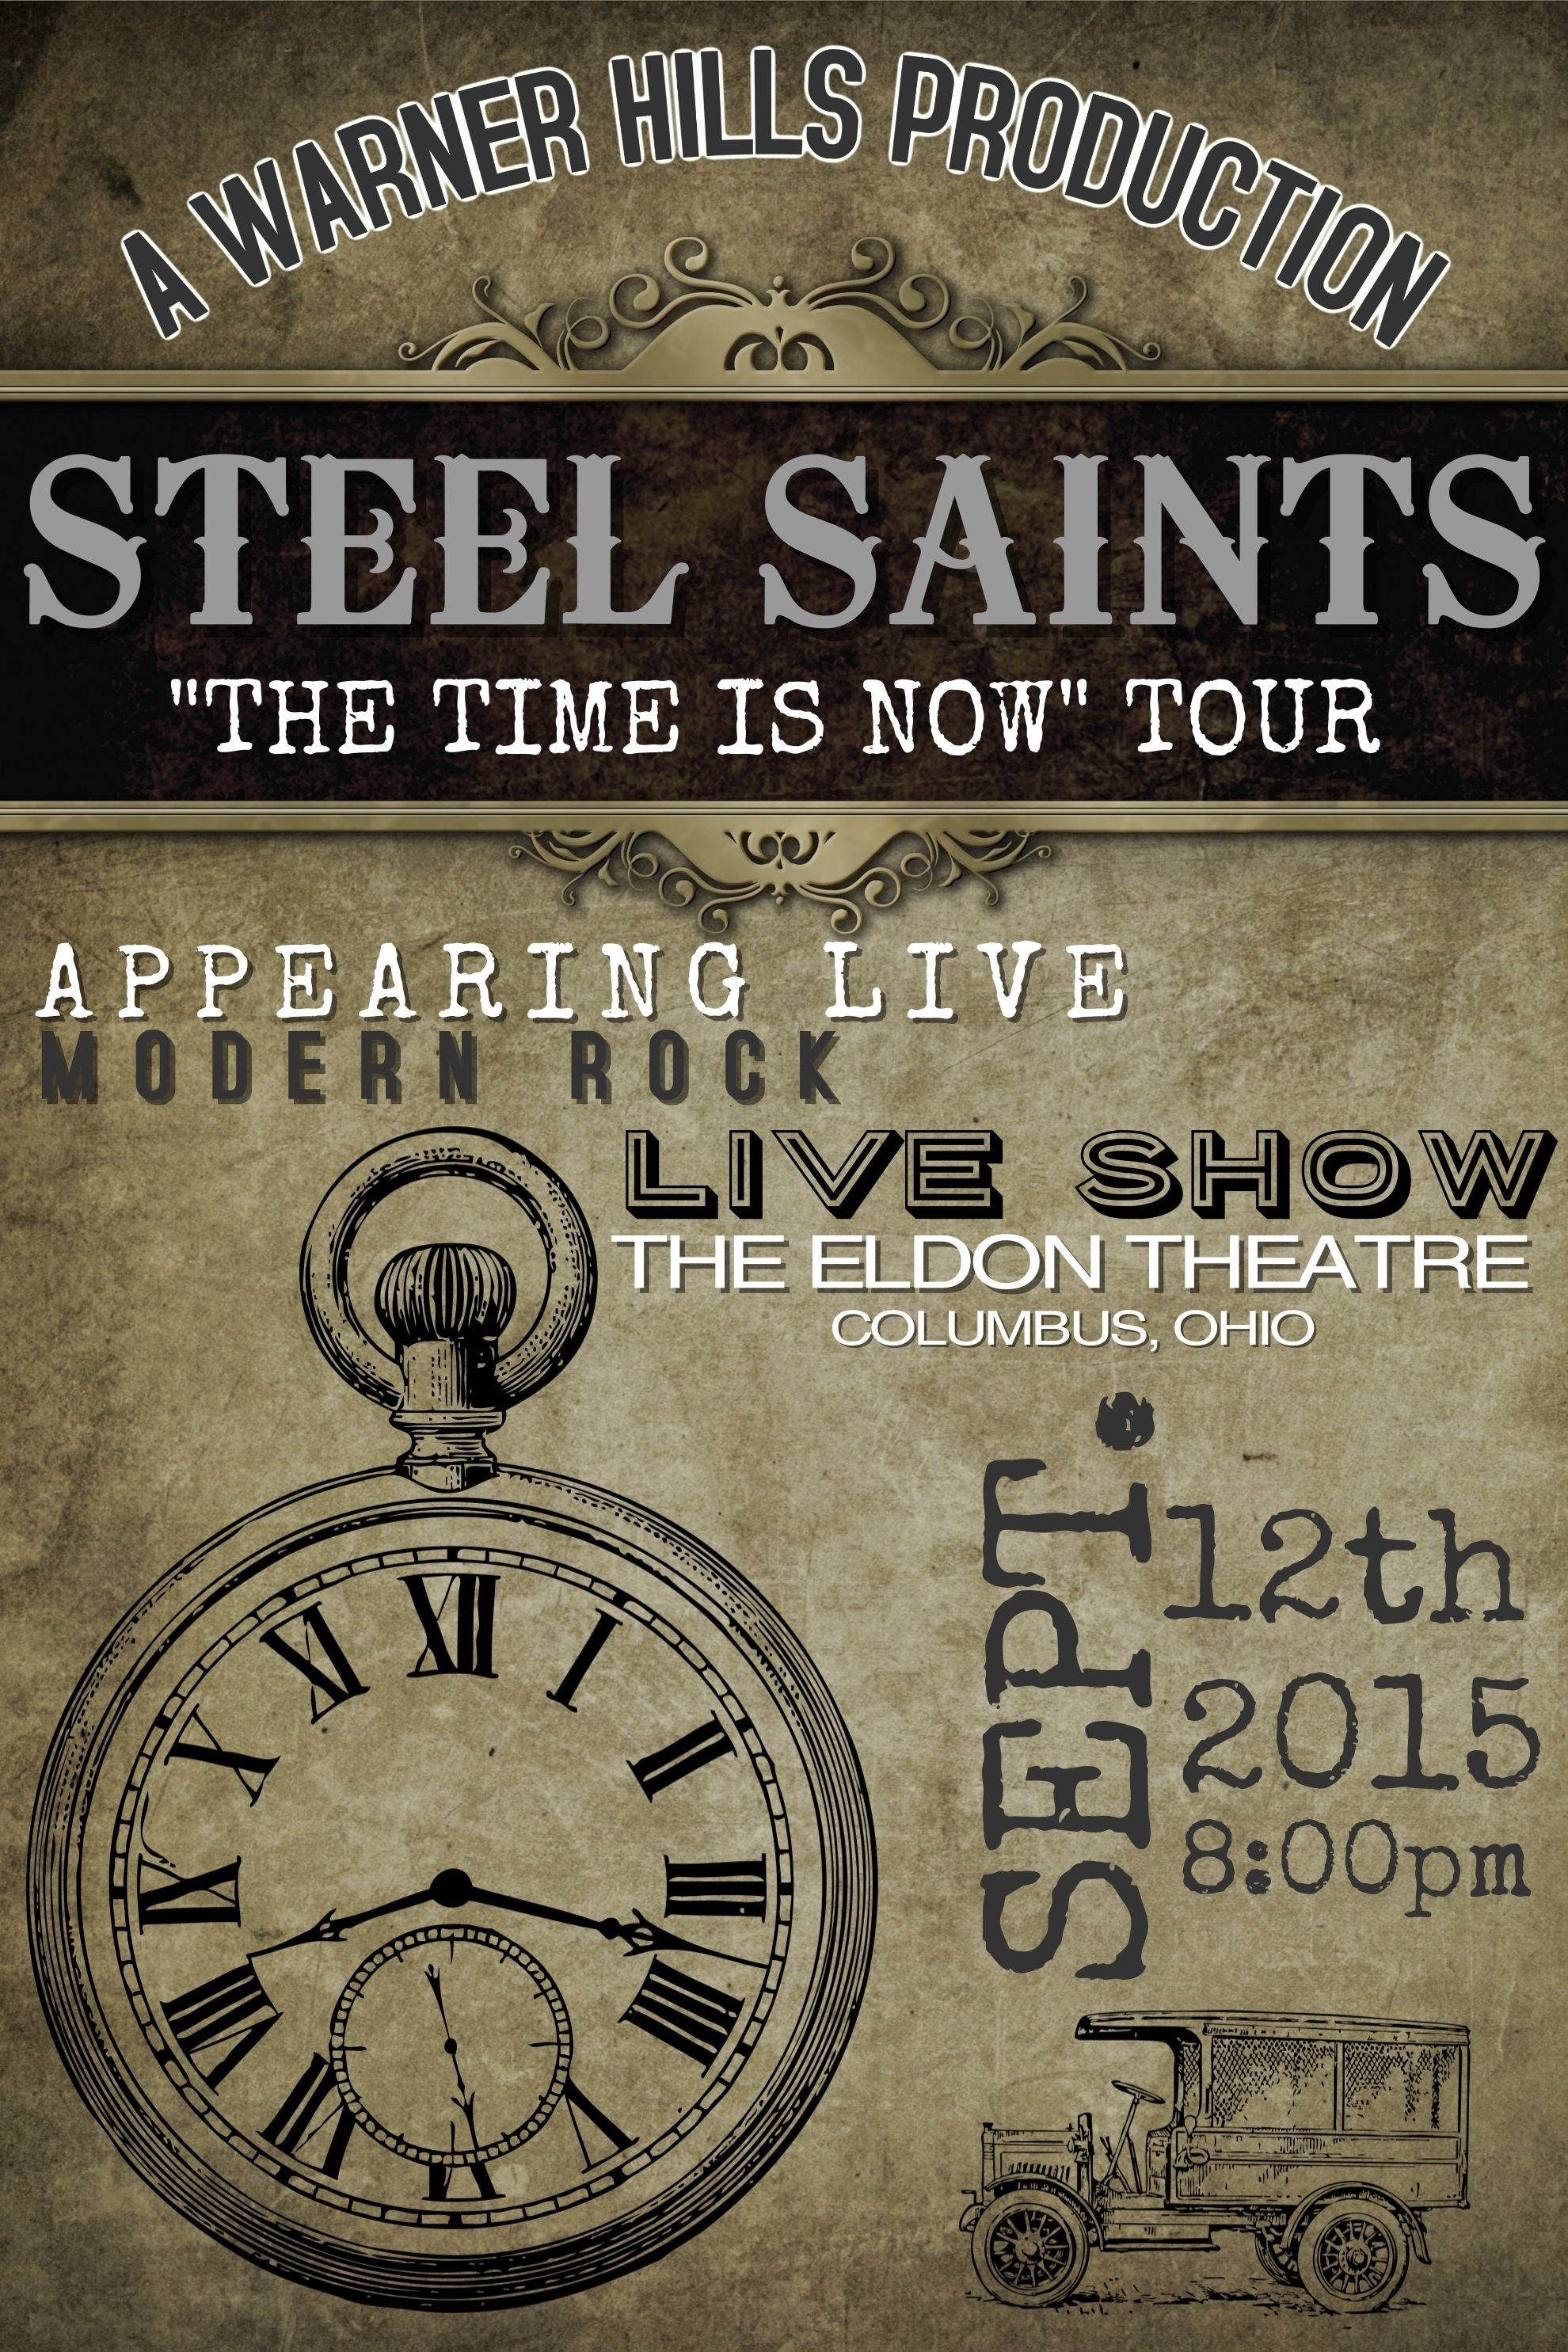 Band Poster Template - Steel Saints. Click on the image to ...